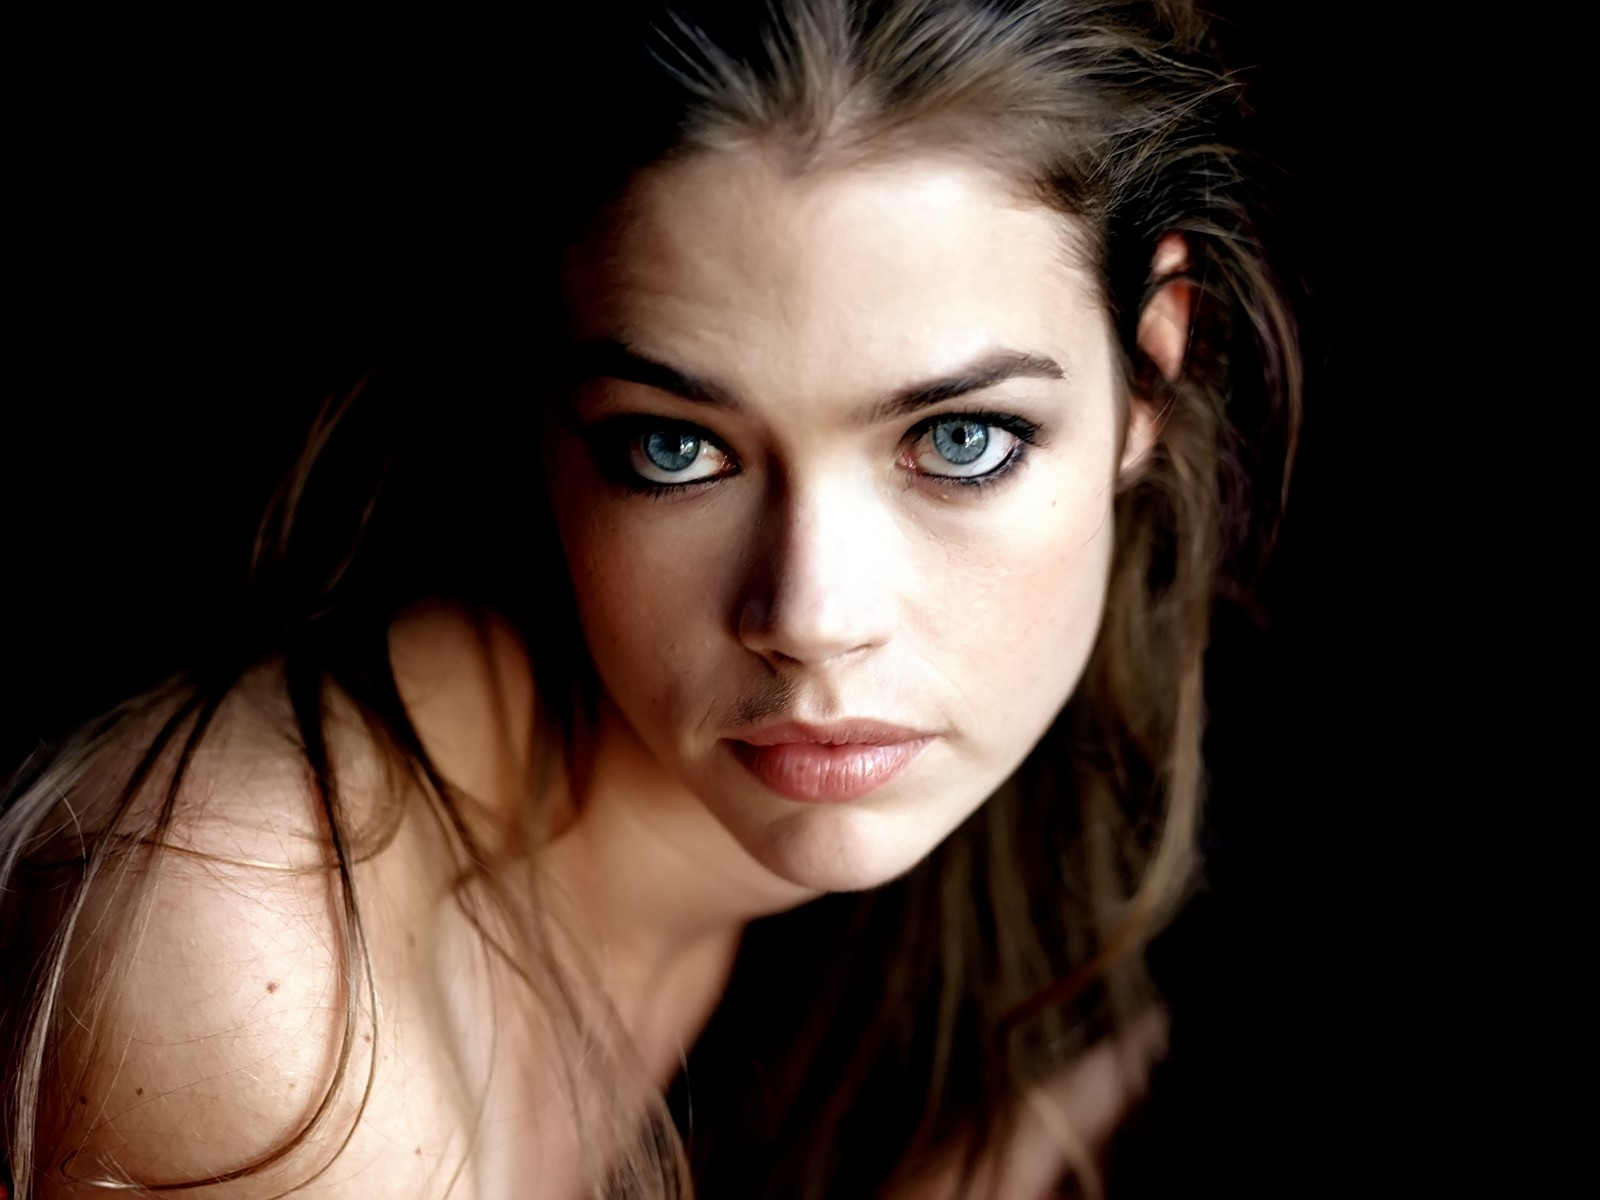 50003_Denise_Richards_03_123_241lo.jpg